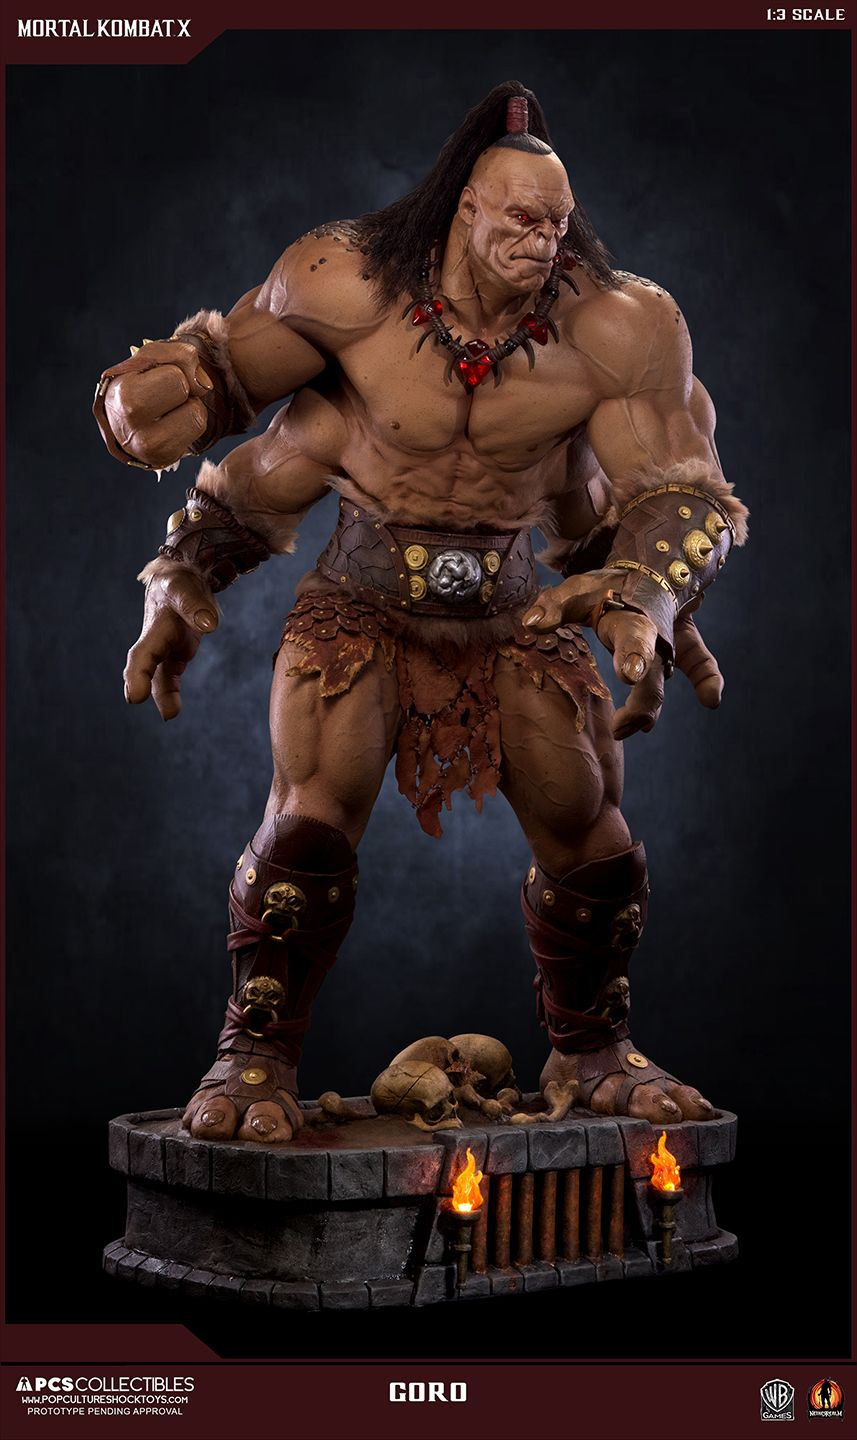 The long gestating Mortal Kombat X – Goro 1/3 Scale Statue